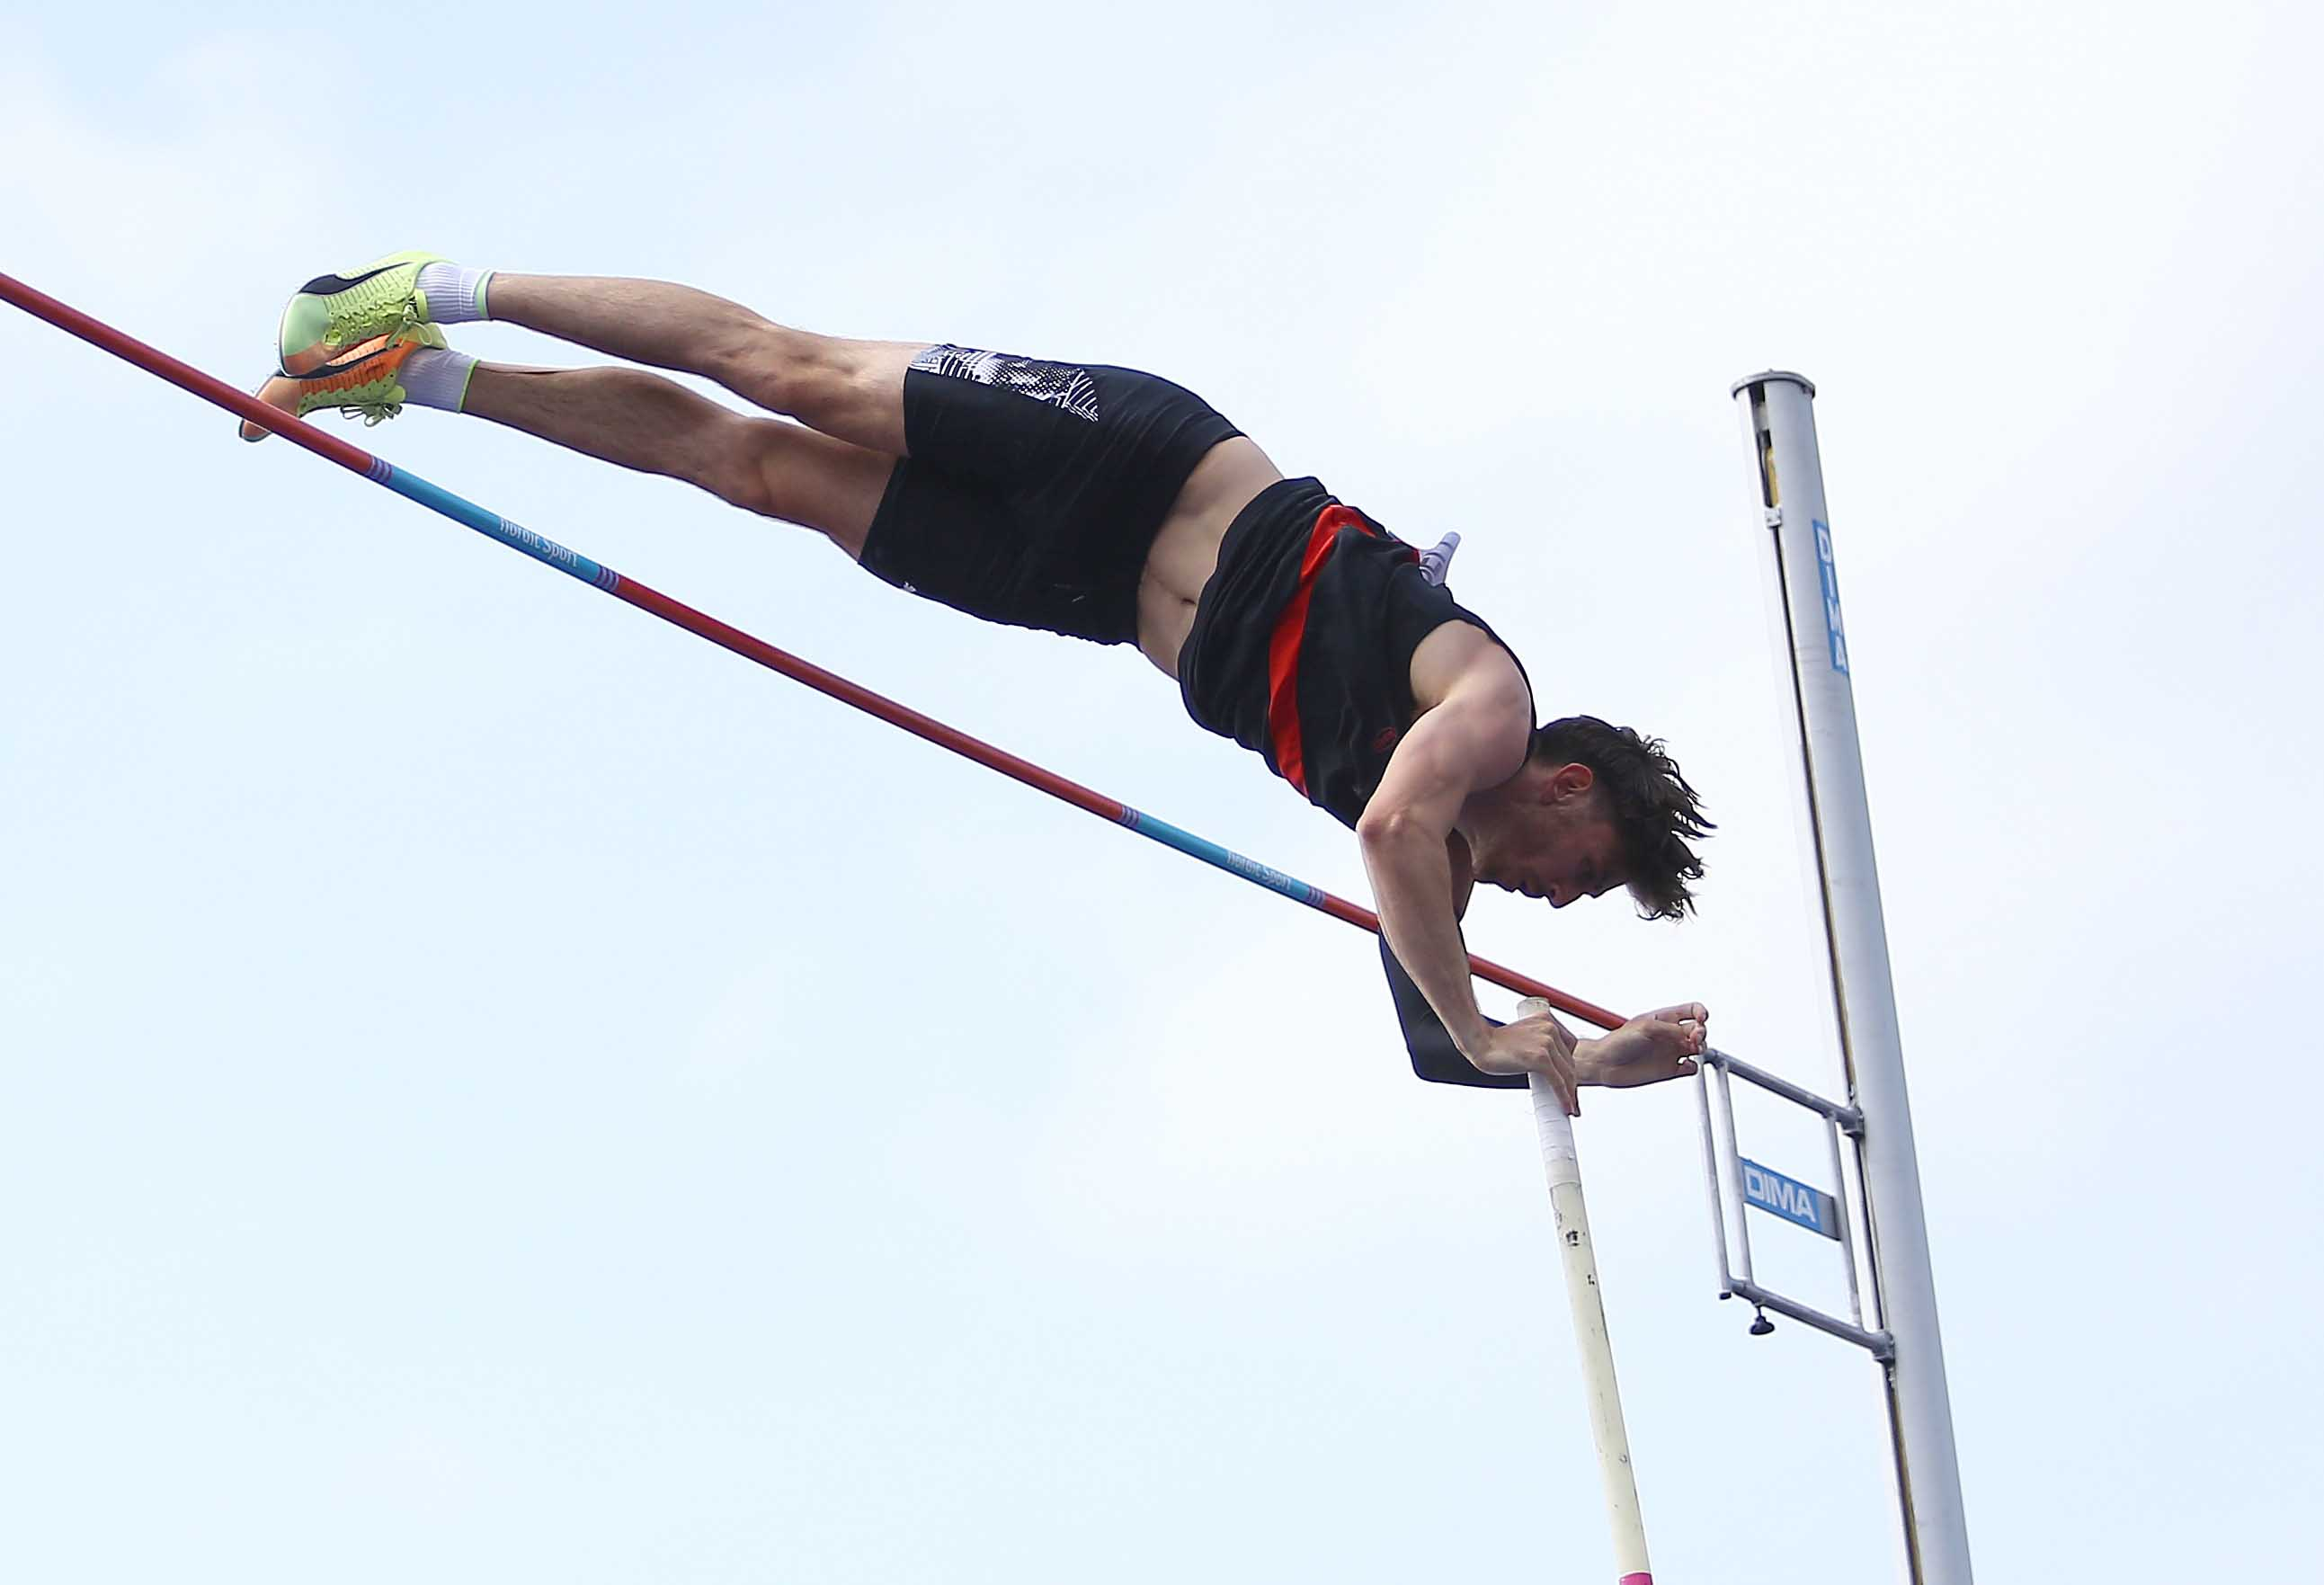 Harry Coppell competes during the Mens Pole Vault Final during the Muller British Athletics Championships in Manchester, England, on June 27.